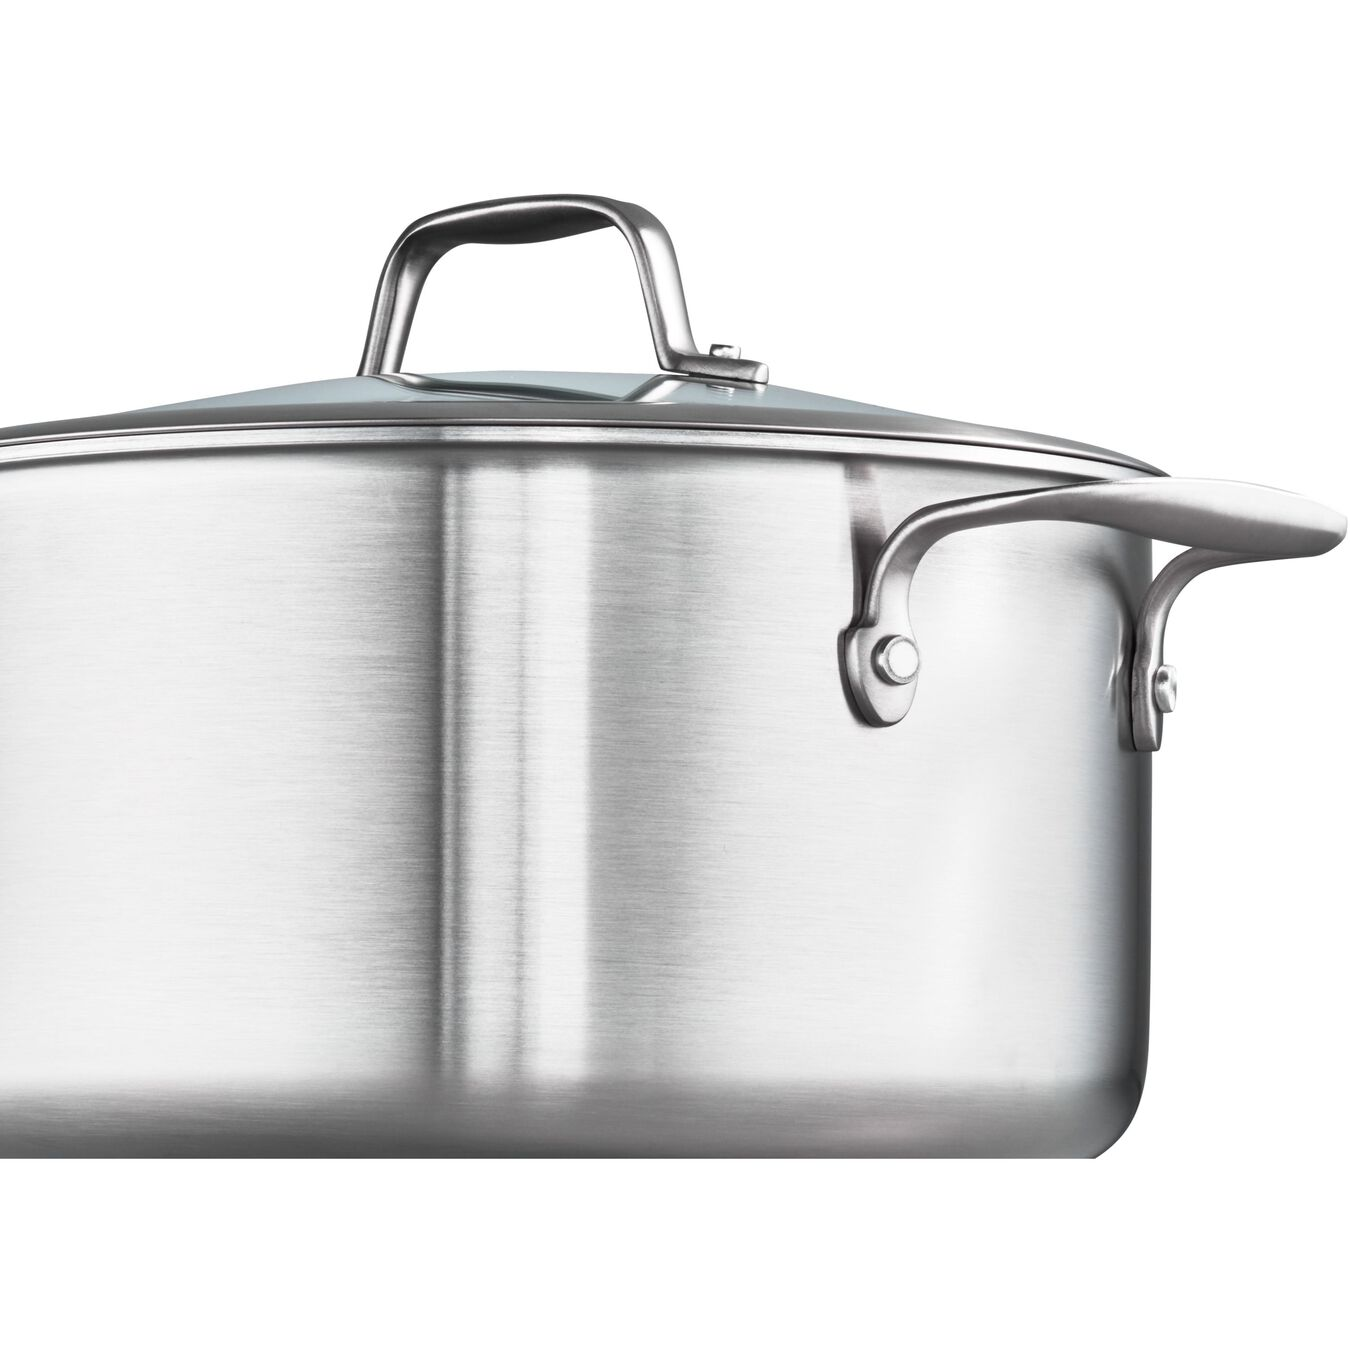 3-ply 7-pc Stainless Steel Ceramic Nonstick Cookware Set,,large 5